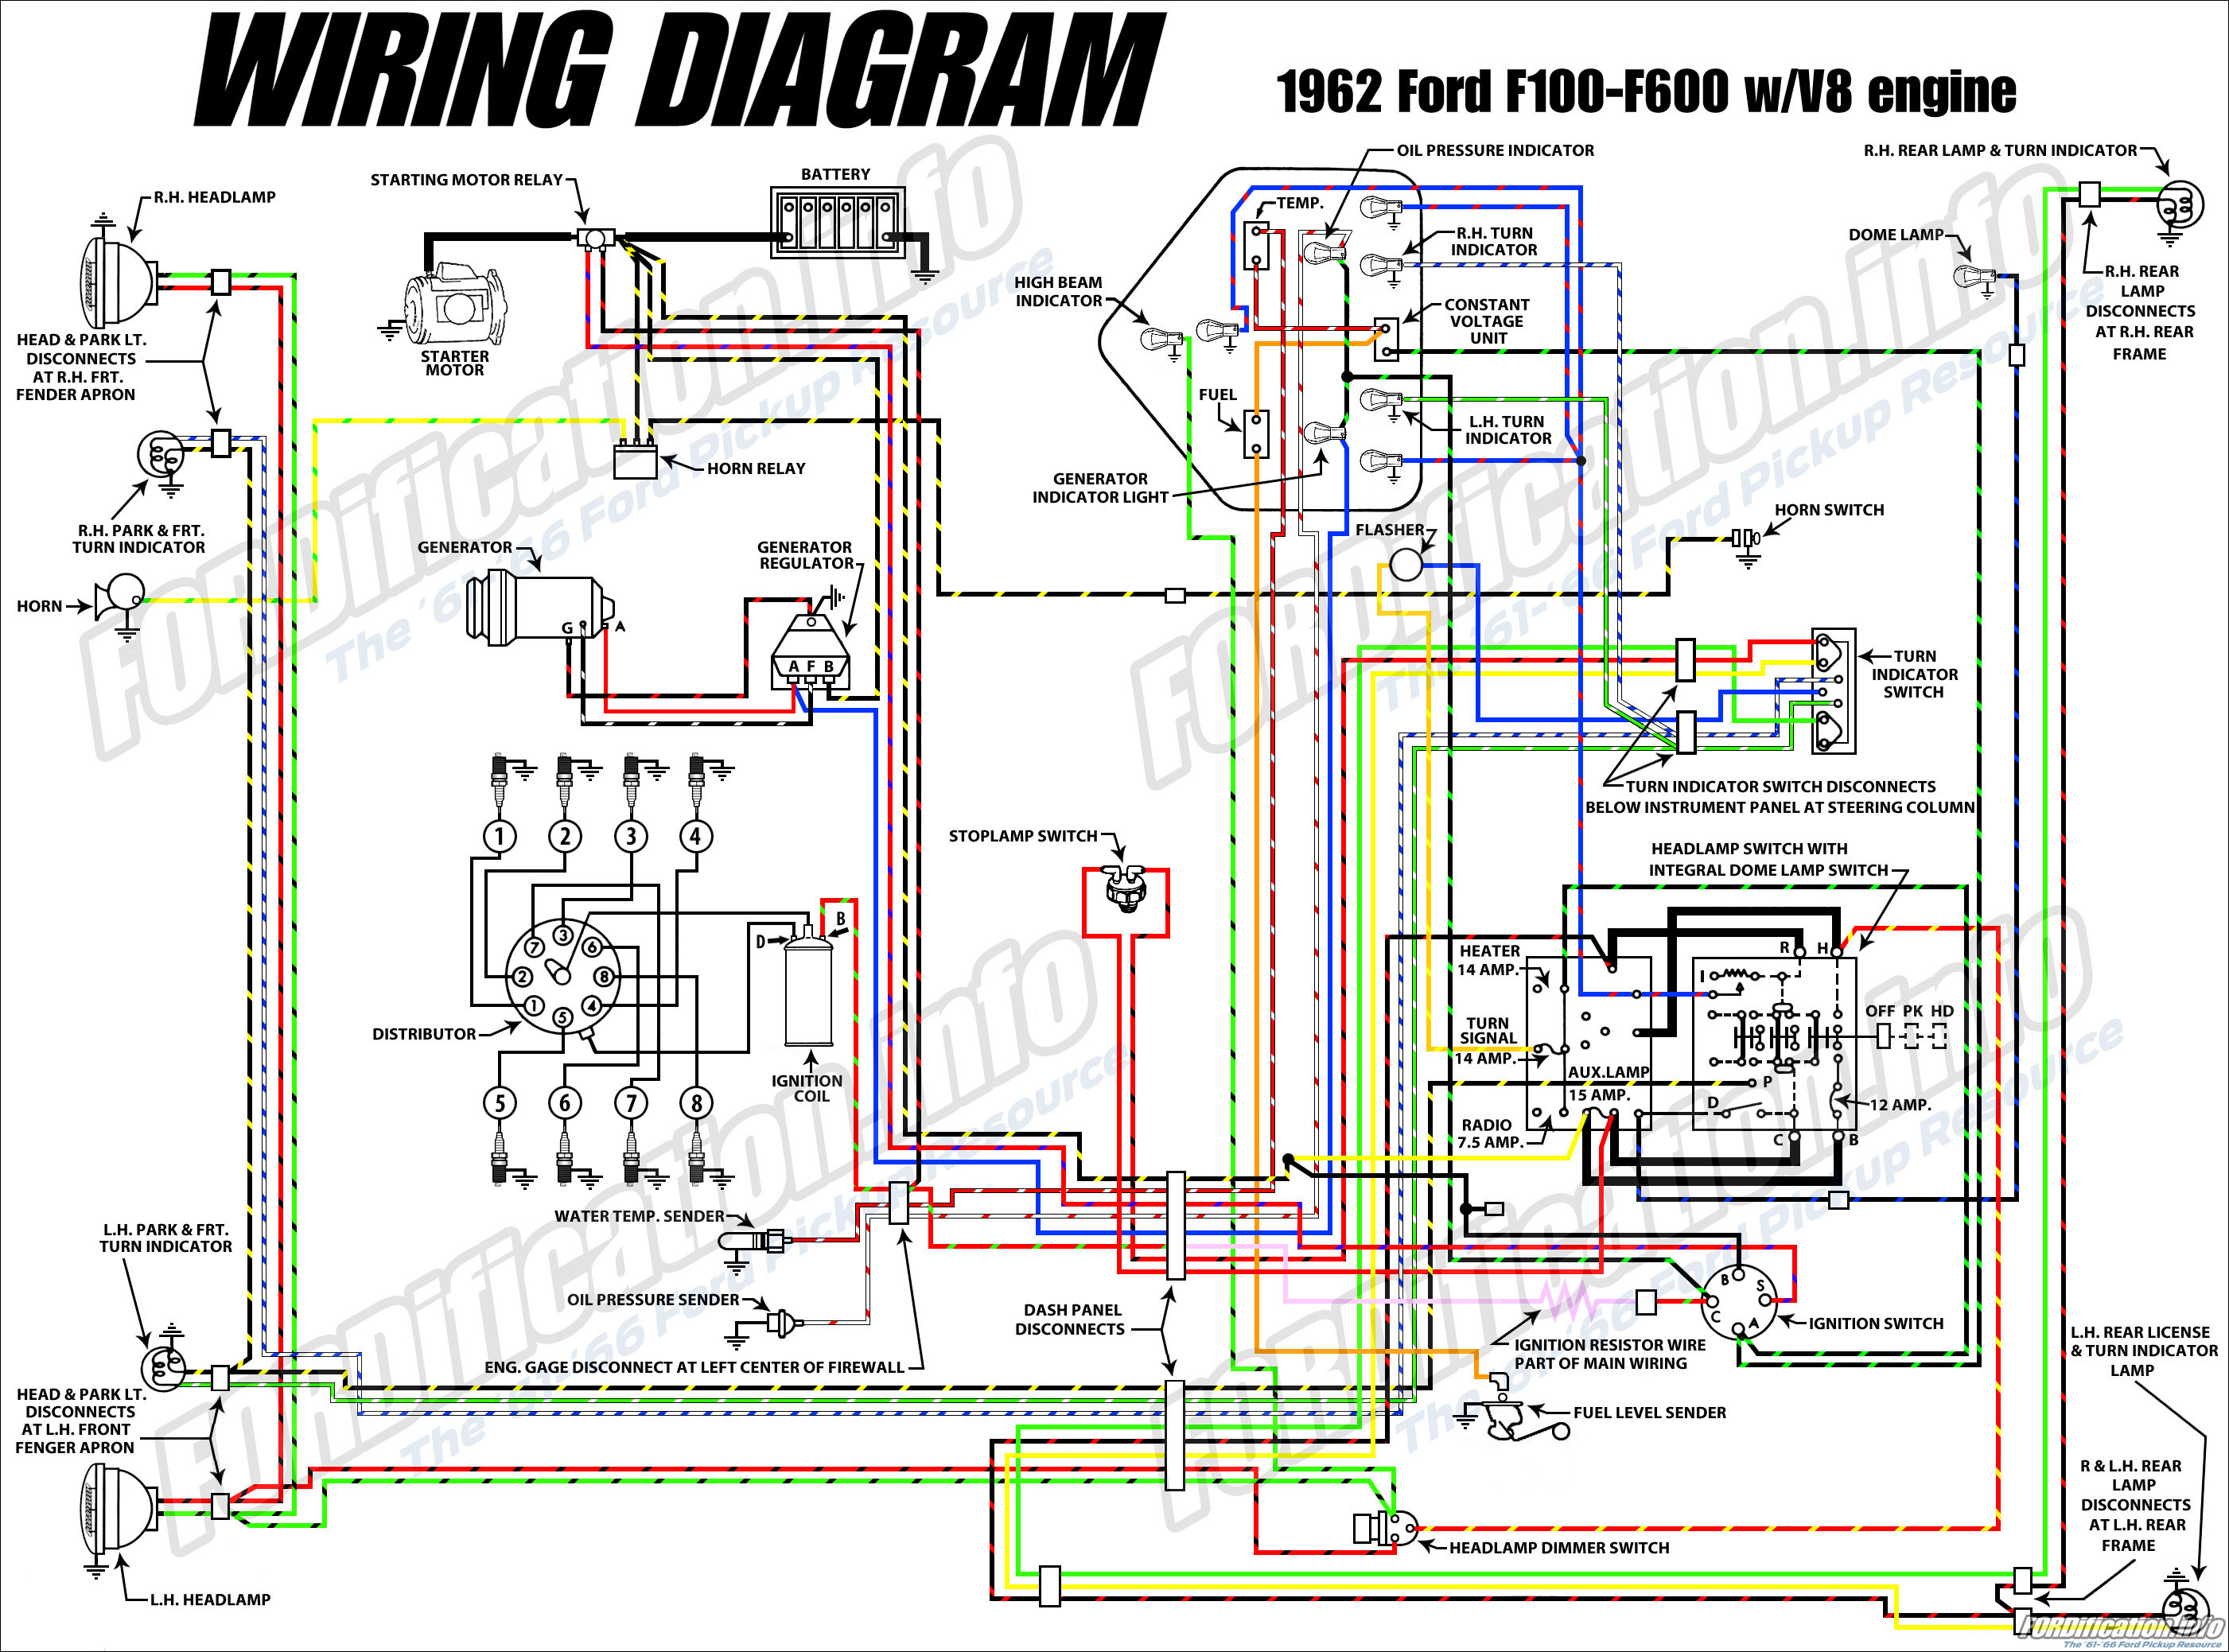 1970 ford wiring diagram - wiring diagram mass-teta-a -  mass-teta-a.disnar.it  disnar.it